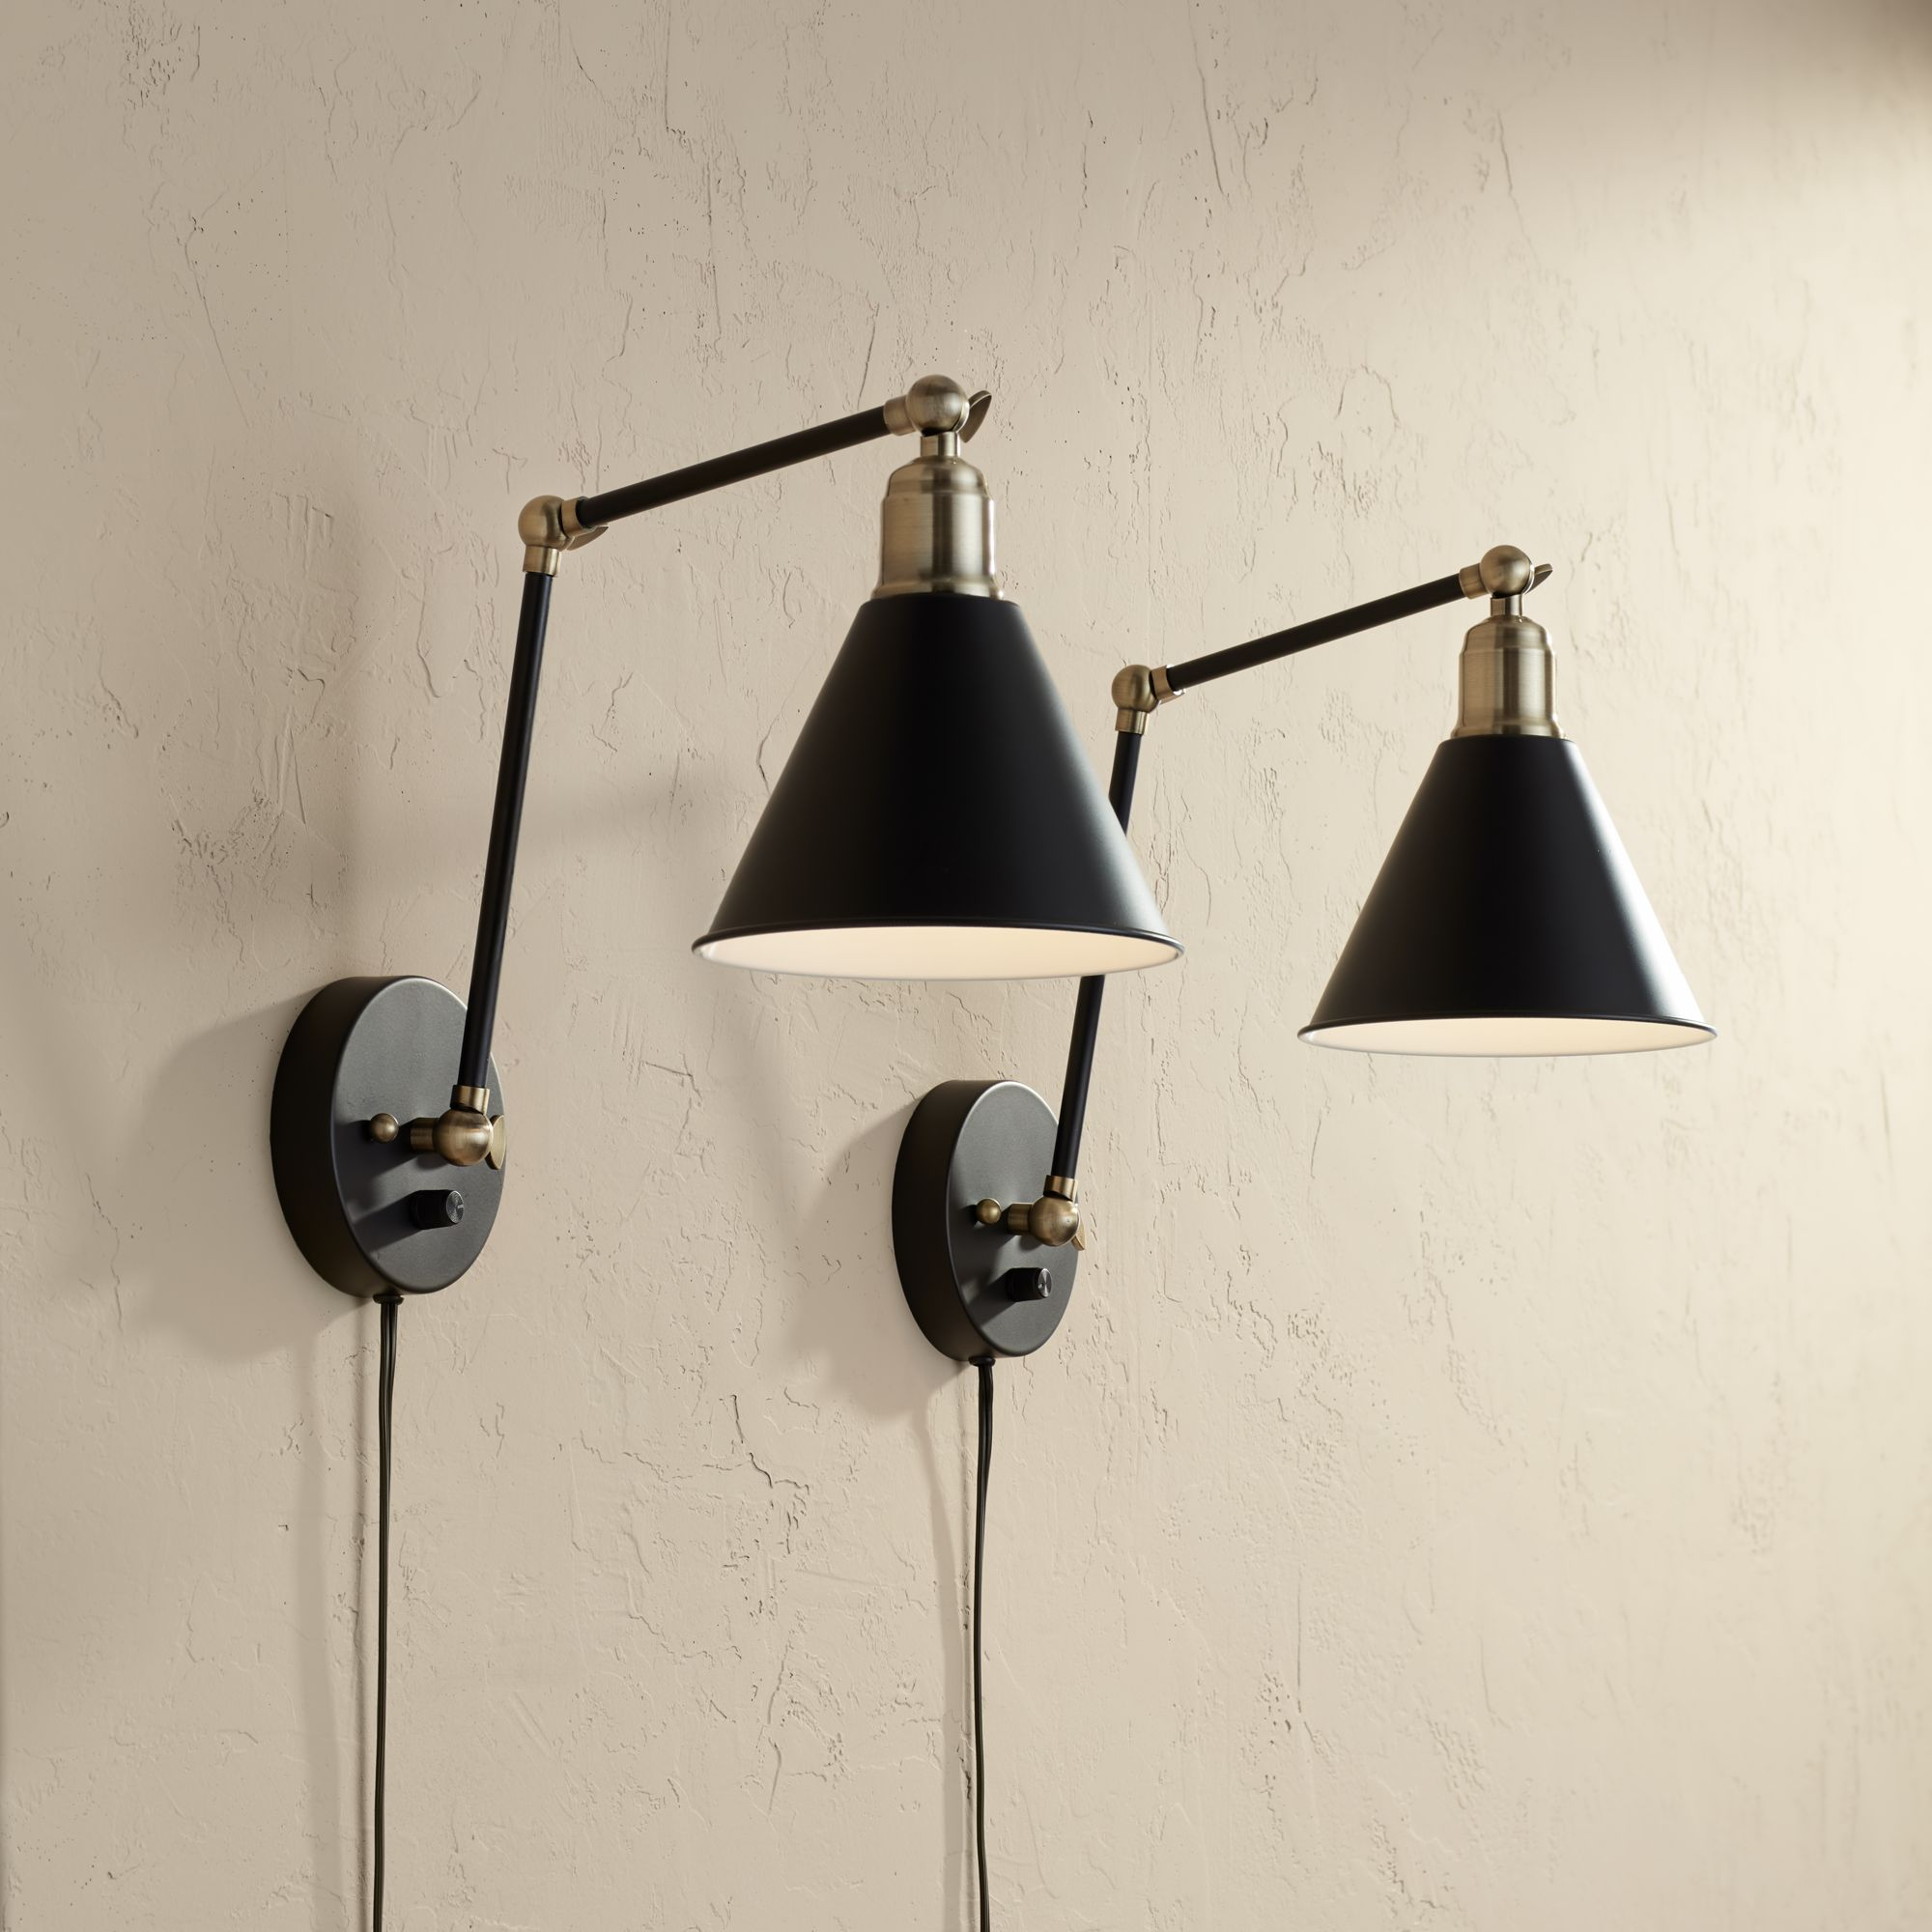 10 Lighting Modern Wall Lamp Plug-In Set of 10 Black and Antique Brass for  Bedroom Reading Living Room - Walmart.com